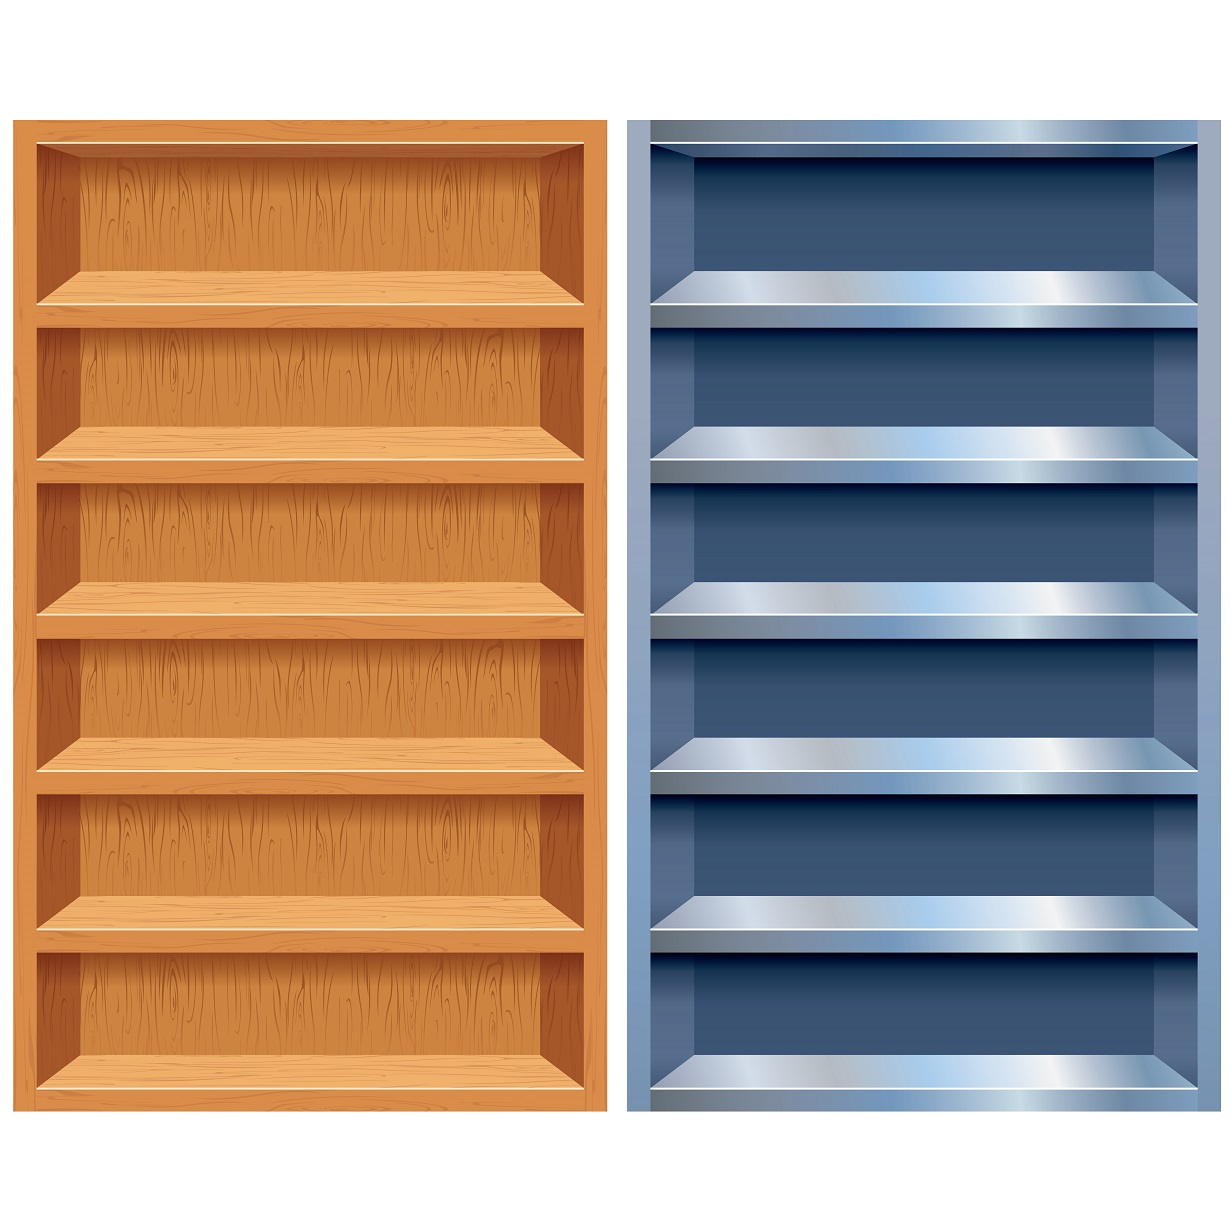 Bookcase encyclopedia book free. Animated clipart library